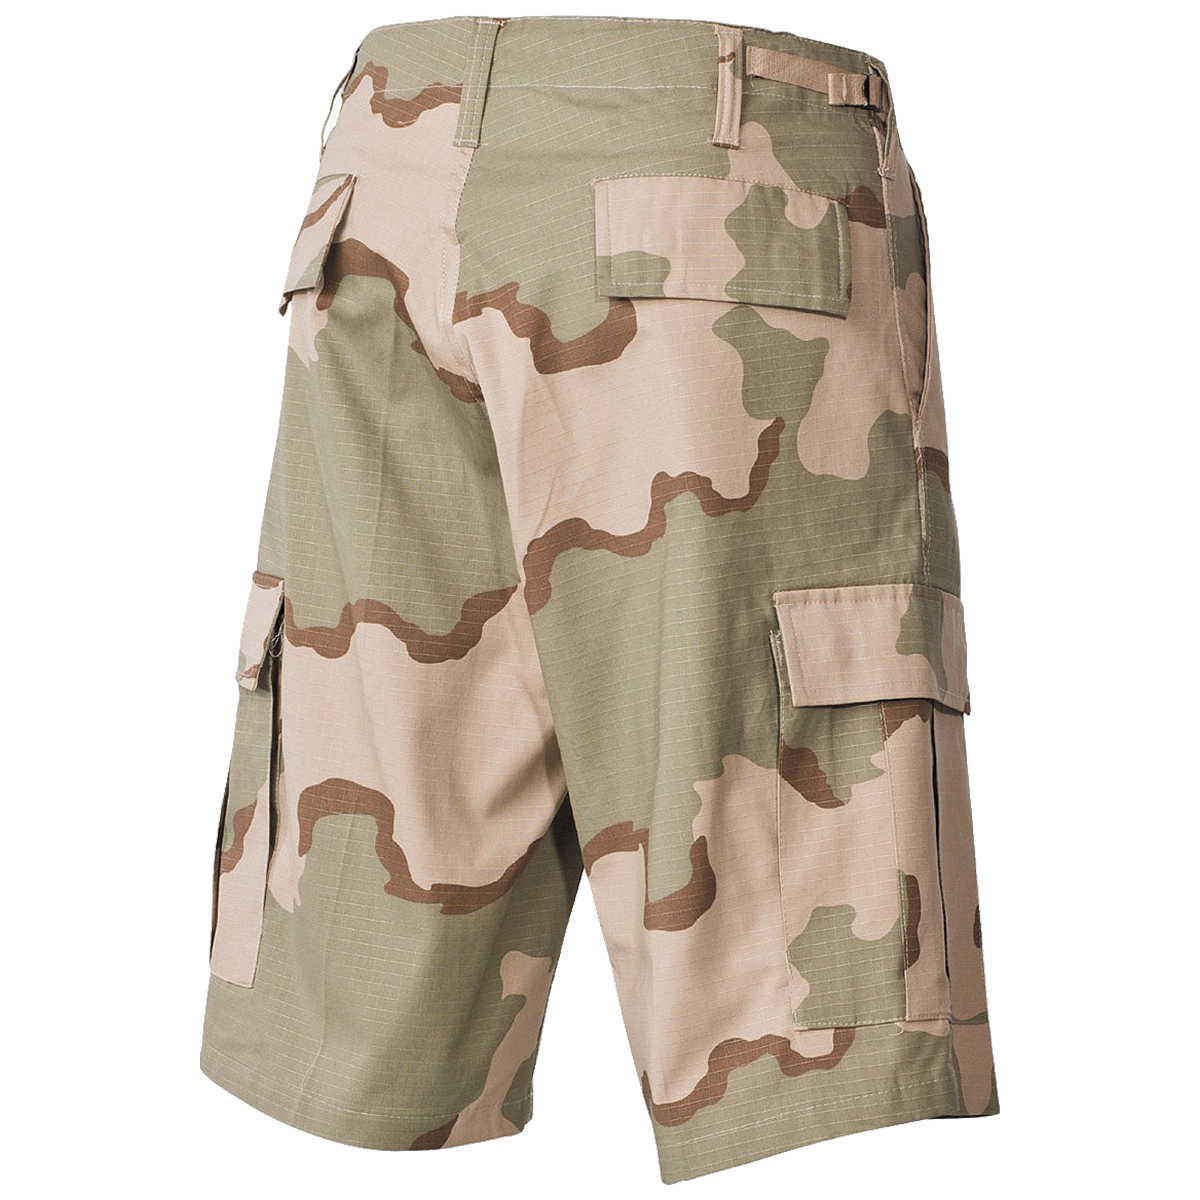 MFH Mens Bermuda US BDU Patrol Cargo Shorts Cotton Ripstop 3-Colour Desert Camo